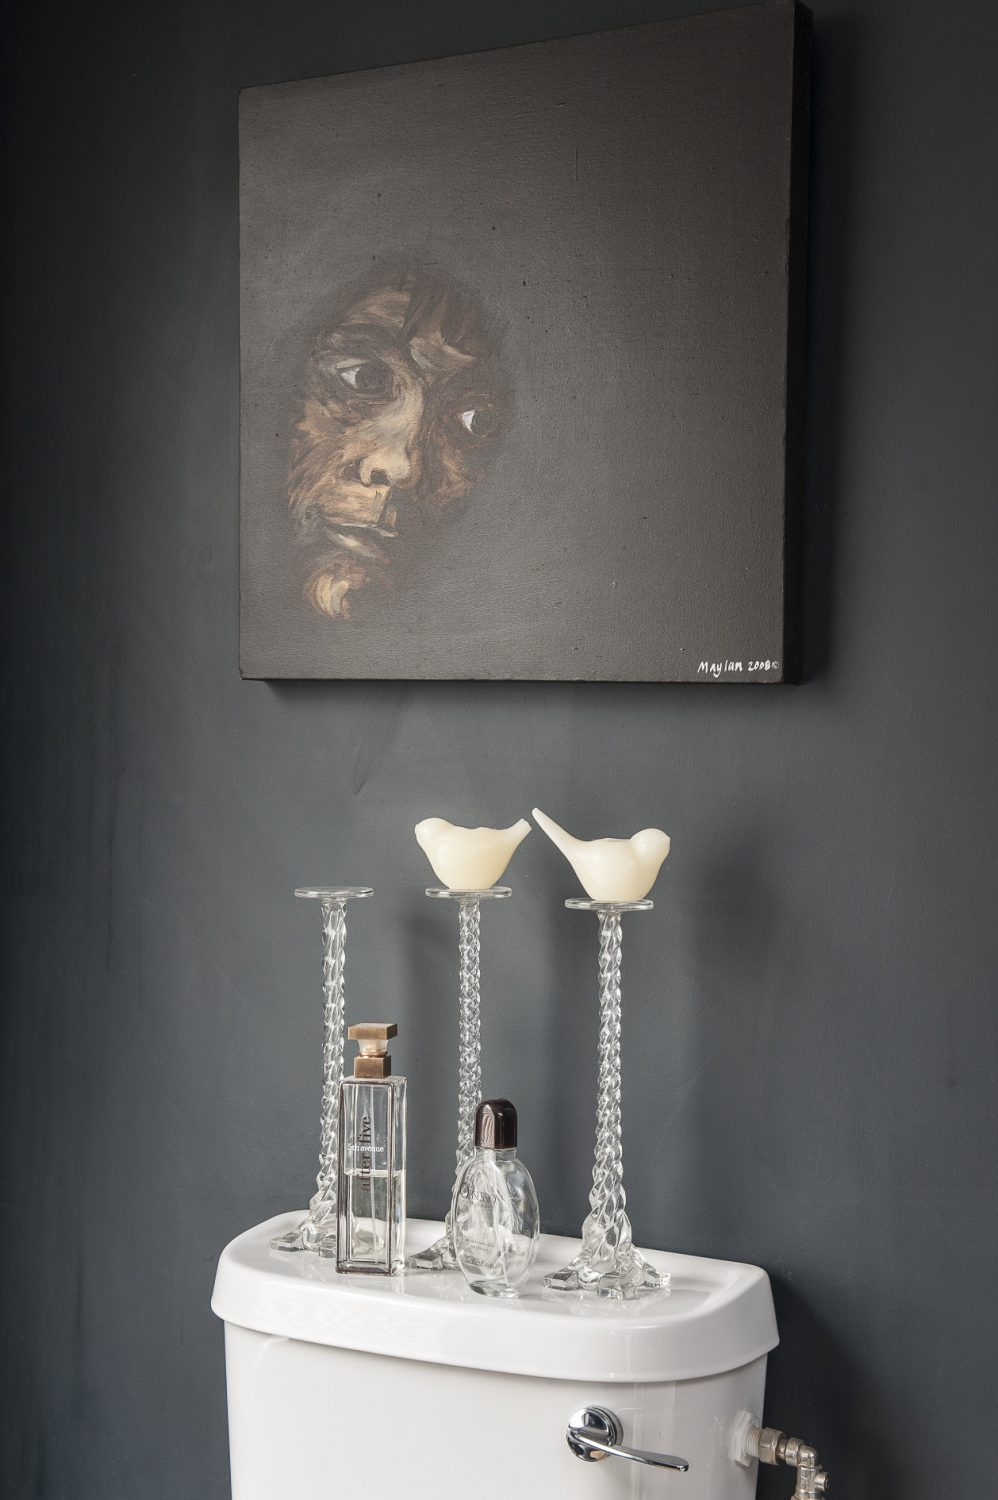 There are two good-sized rooms – one white and one black – both have a striking painting in a similar position; in the white bathroom there's a picture of a skull by Ben Eine and in the black, a raw and intense painting by Alice Maylam titled 'Out of the Dark' which features a face protruding into the light and provided the inspiration for Rob's bold colour choice